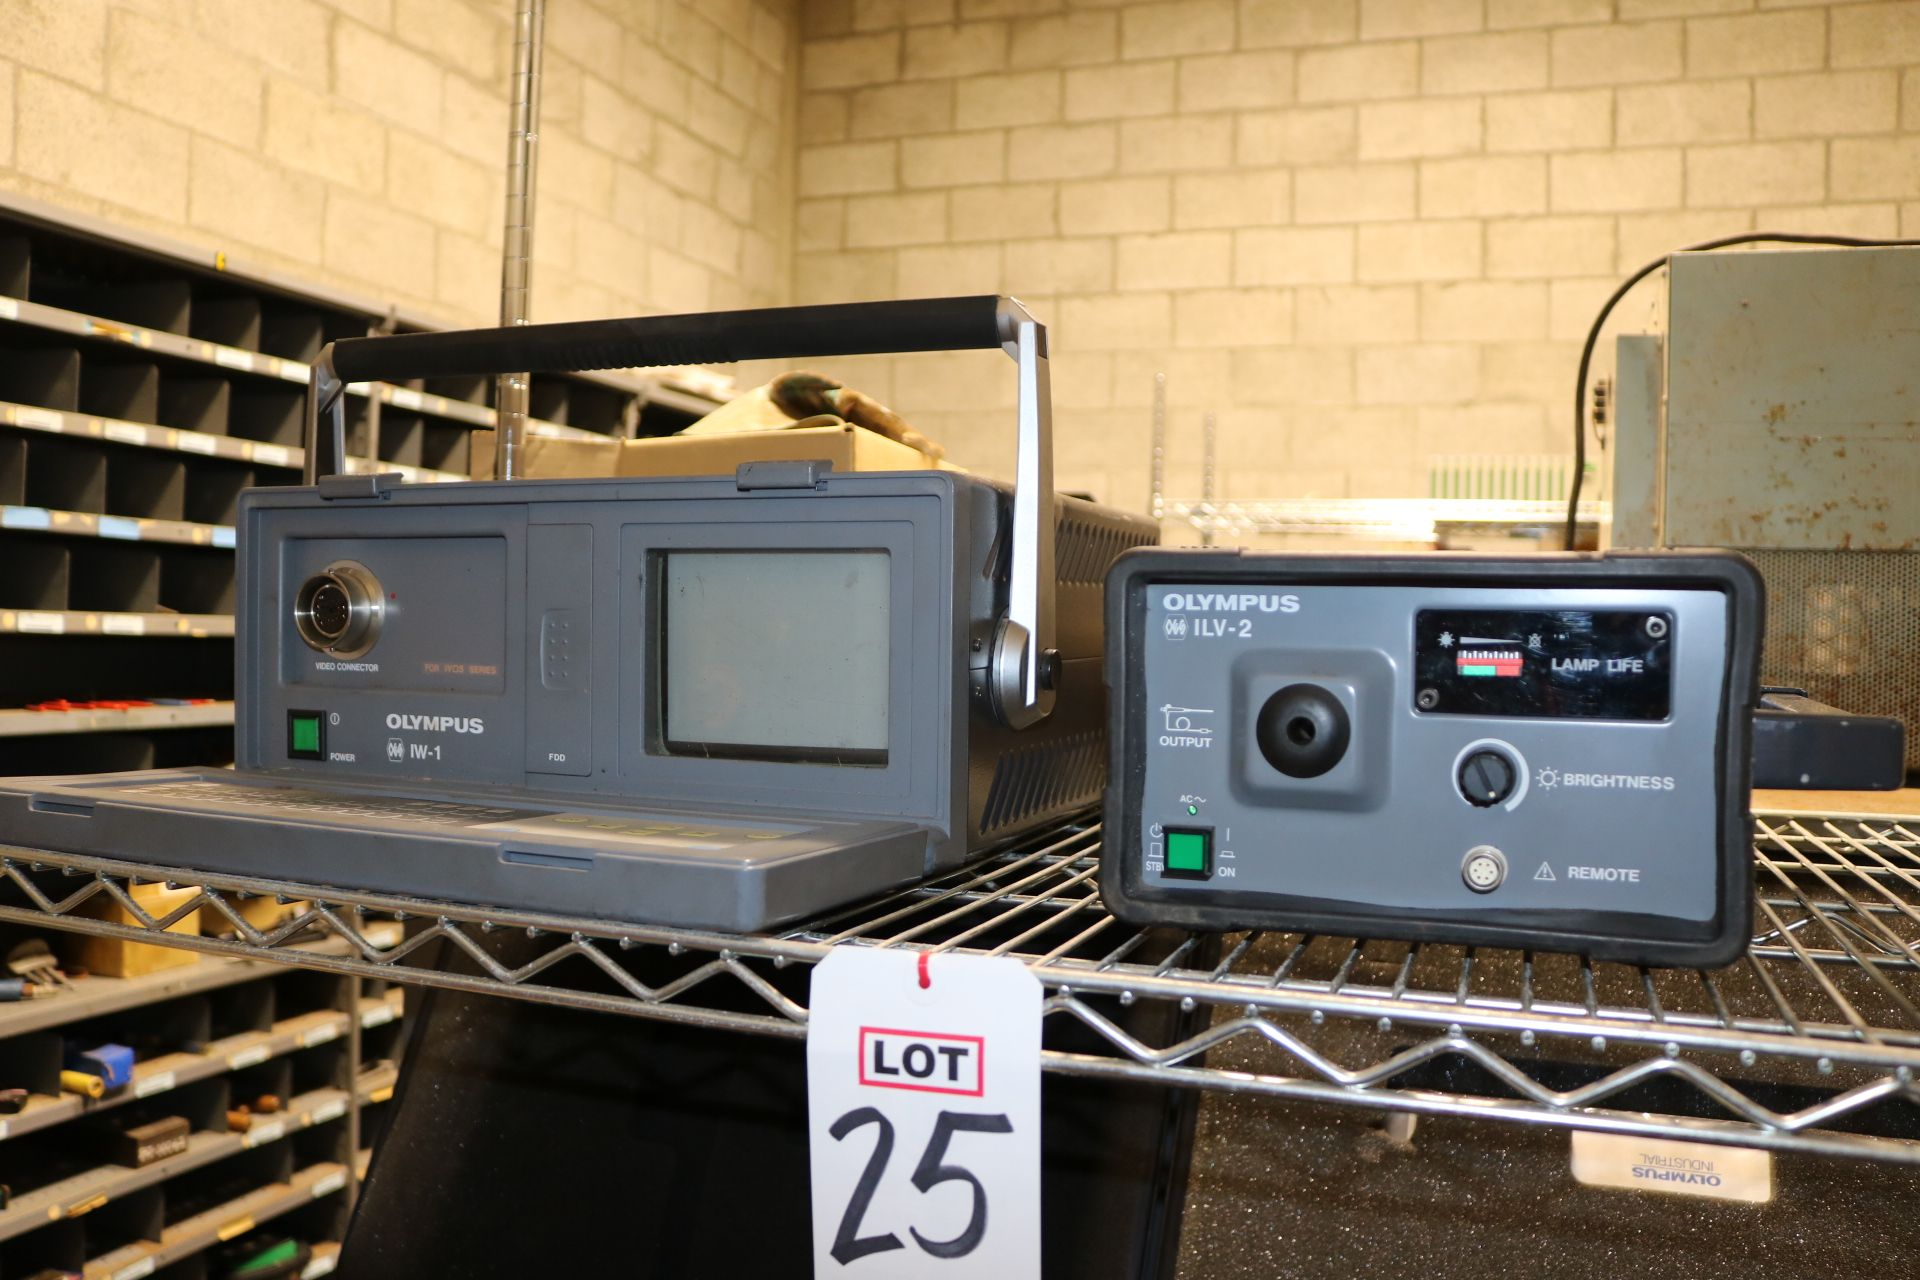 Lot 25 - LOT - OLYMPUS IW-1 VIDEO ANALYZER, ILV-2 OES XENON LIGHT SOURCE, OLYMPUS IF11D4-20 OPTICAL FIBRE